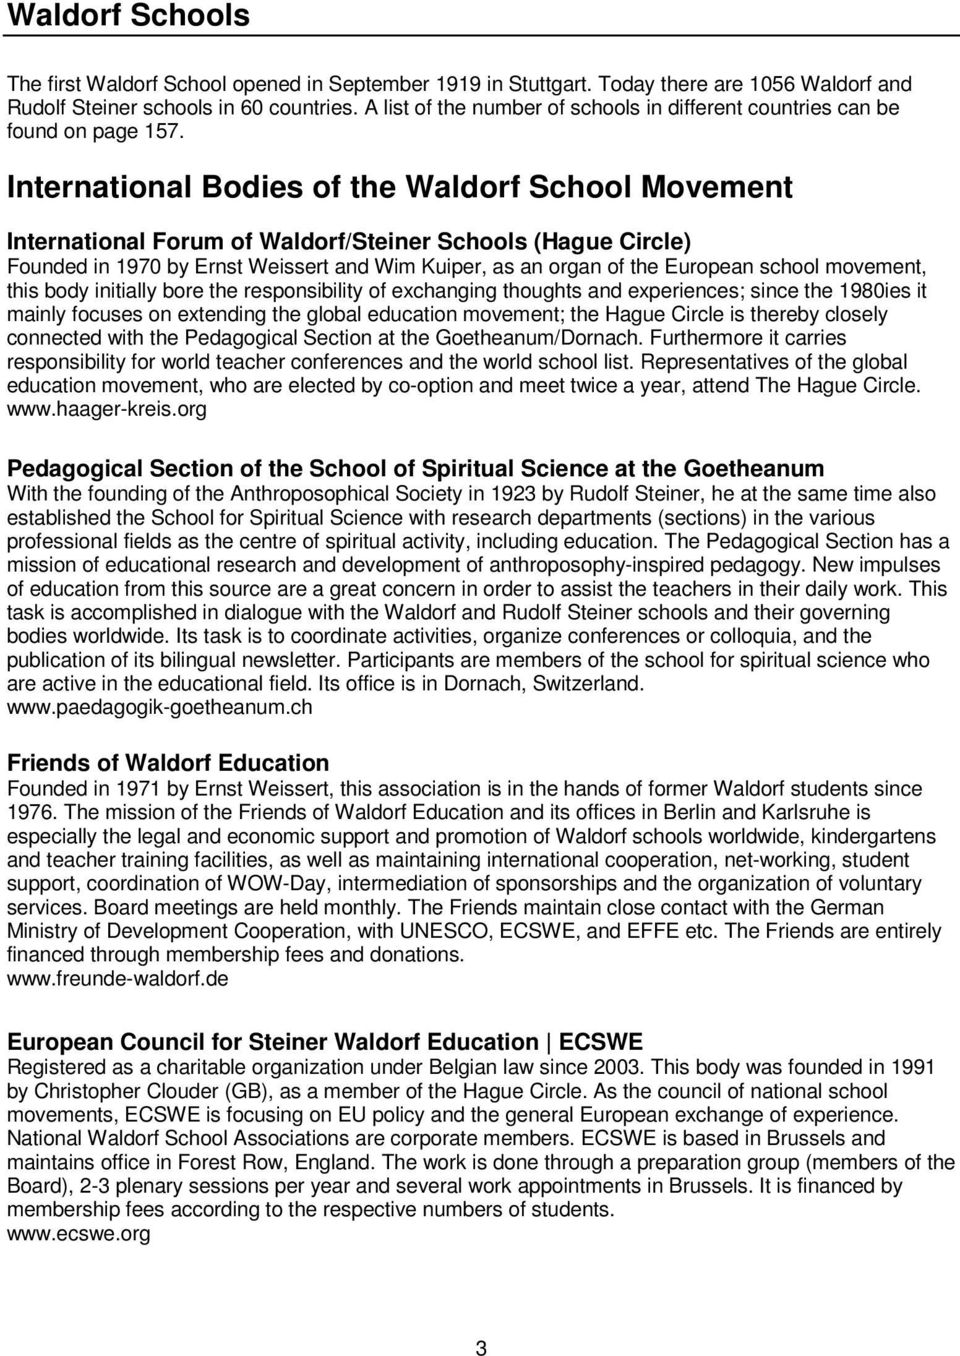 International Bodies of the Waldorf School Movement International Forum of Waldorf/Steiner Schools (Hague Circle) Founded in 1970 by Ernst Weissert and Wim Kuiper, as an organ of the European school